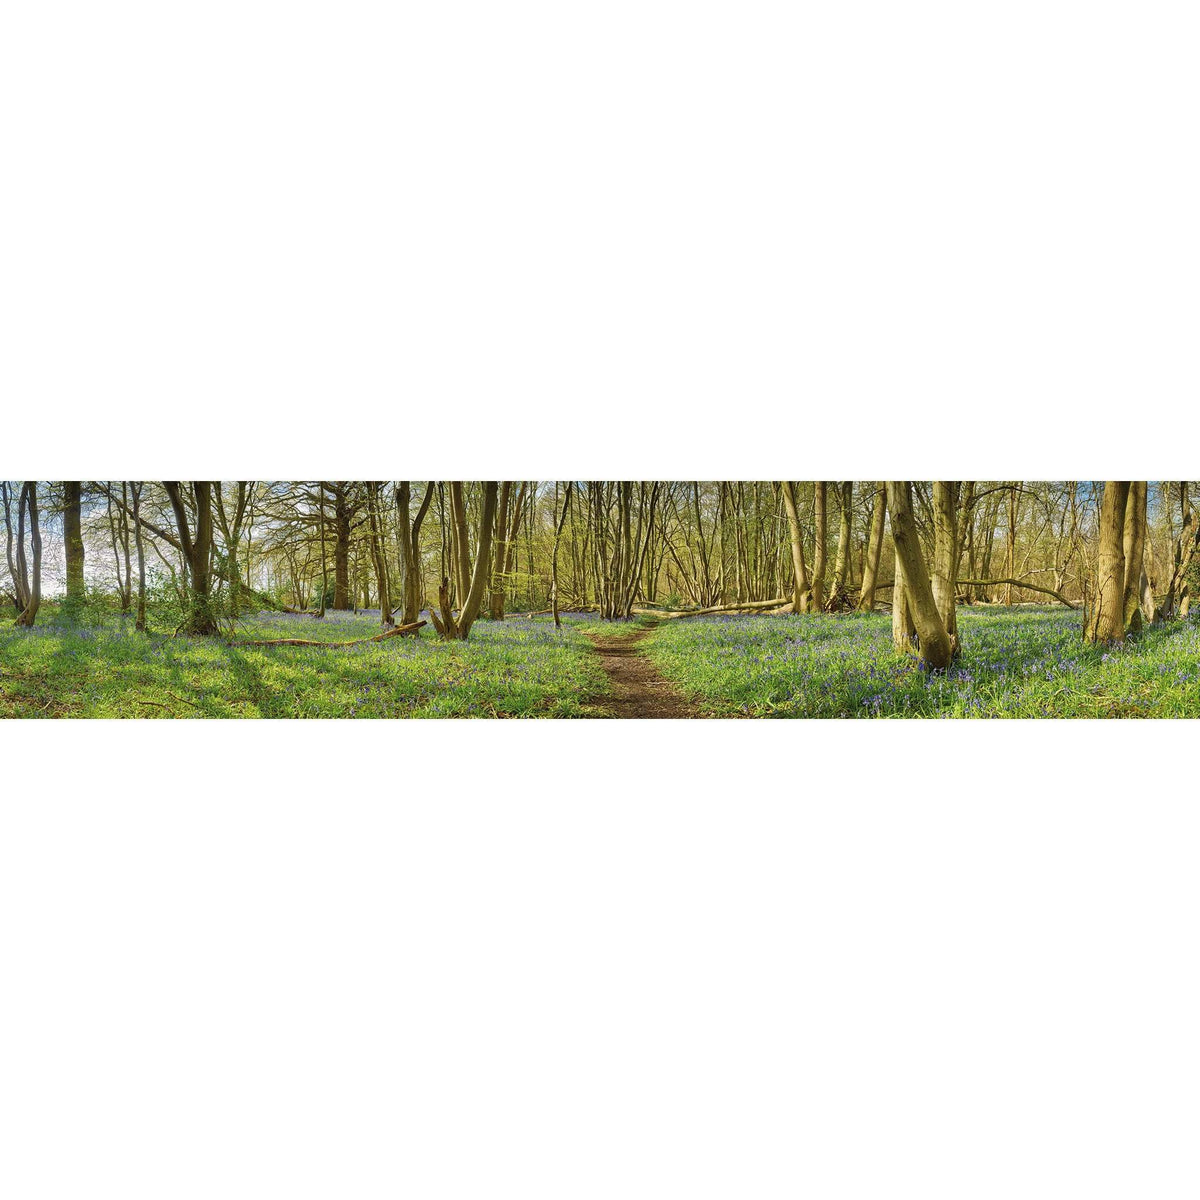 Wall Acoustics Full Size Mural Muffle Mural - Wayland Wood Bluebells Full Size Mural